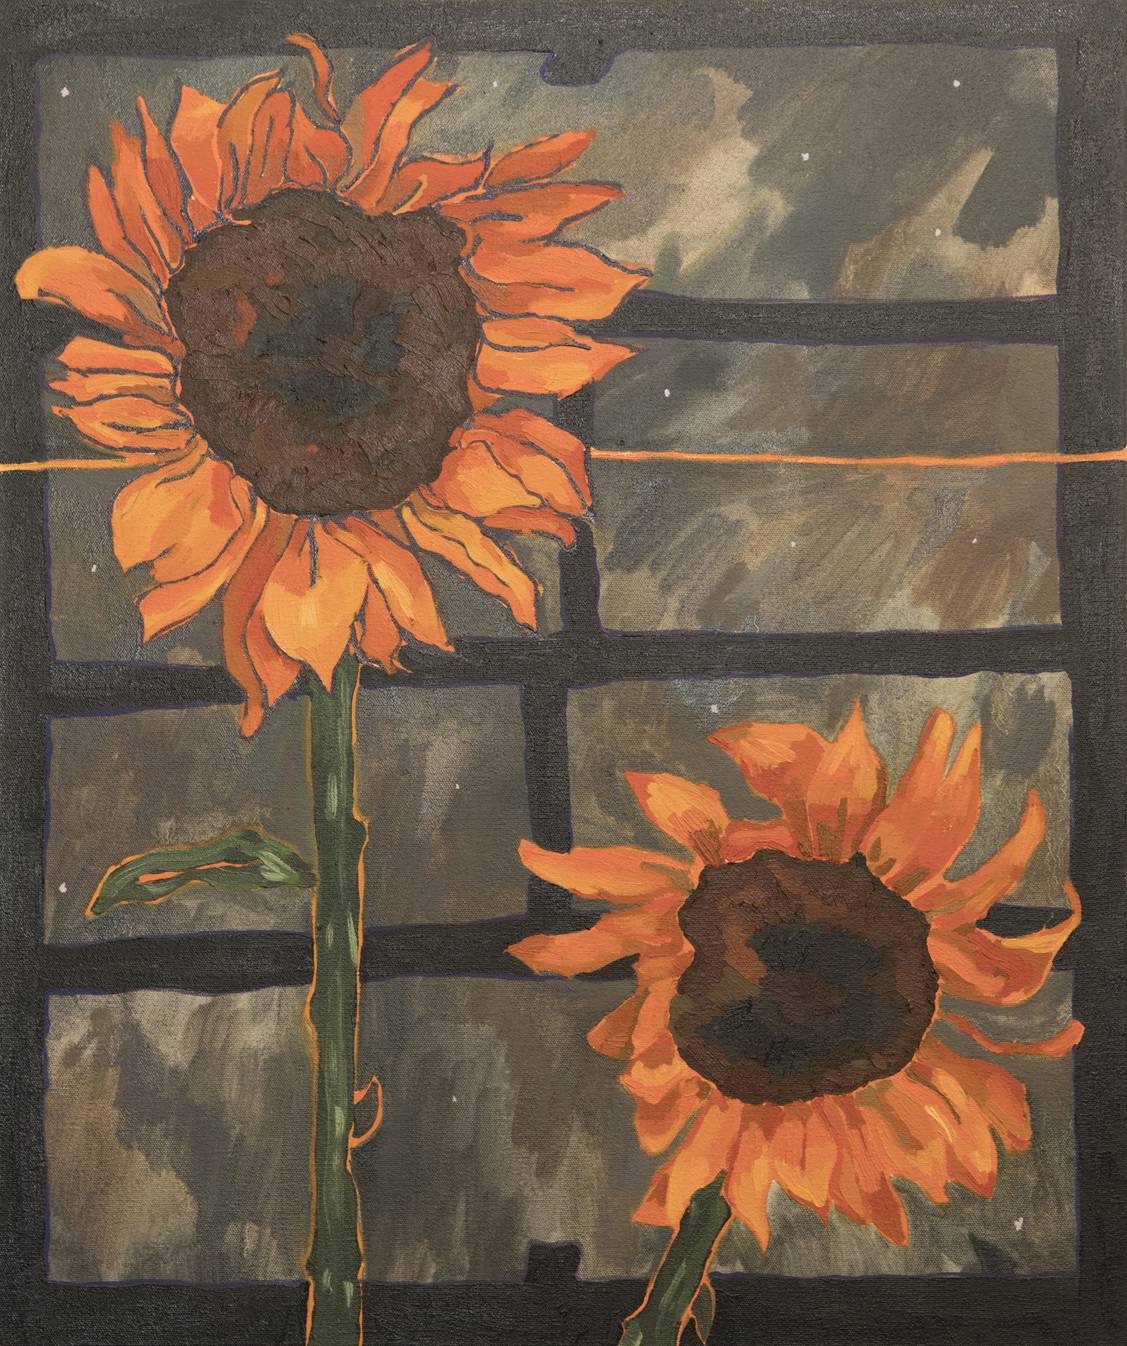 Alex Chaves   Sunflowers  2018 Oil on canvas 61 x 50.8 cm  Available